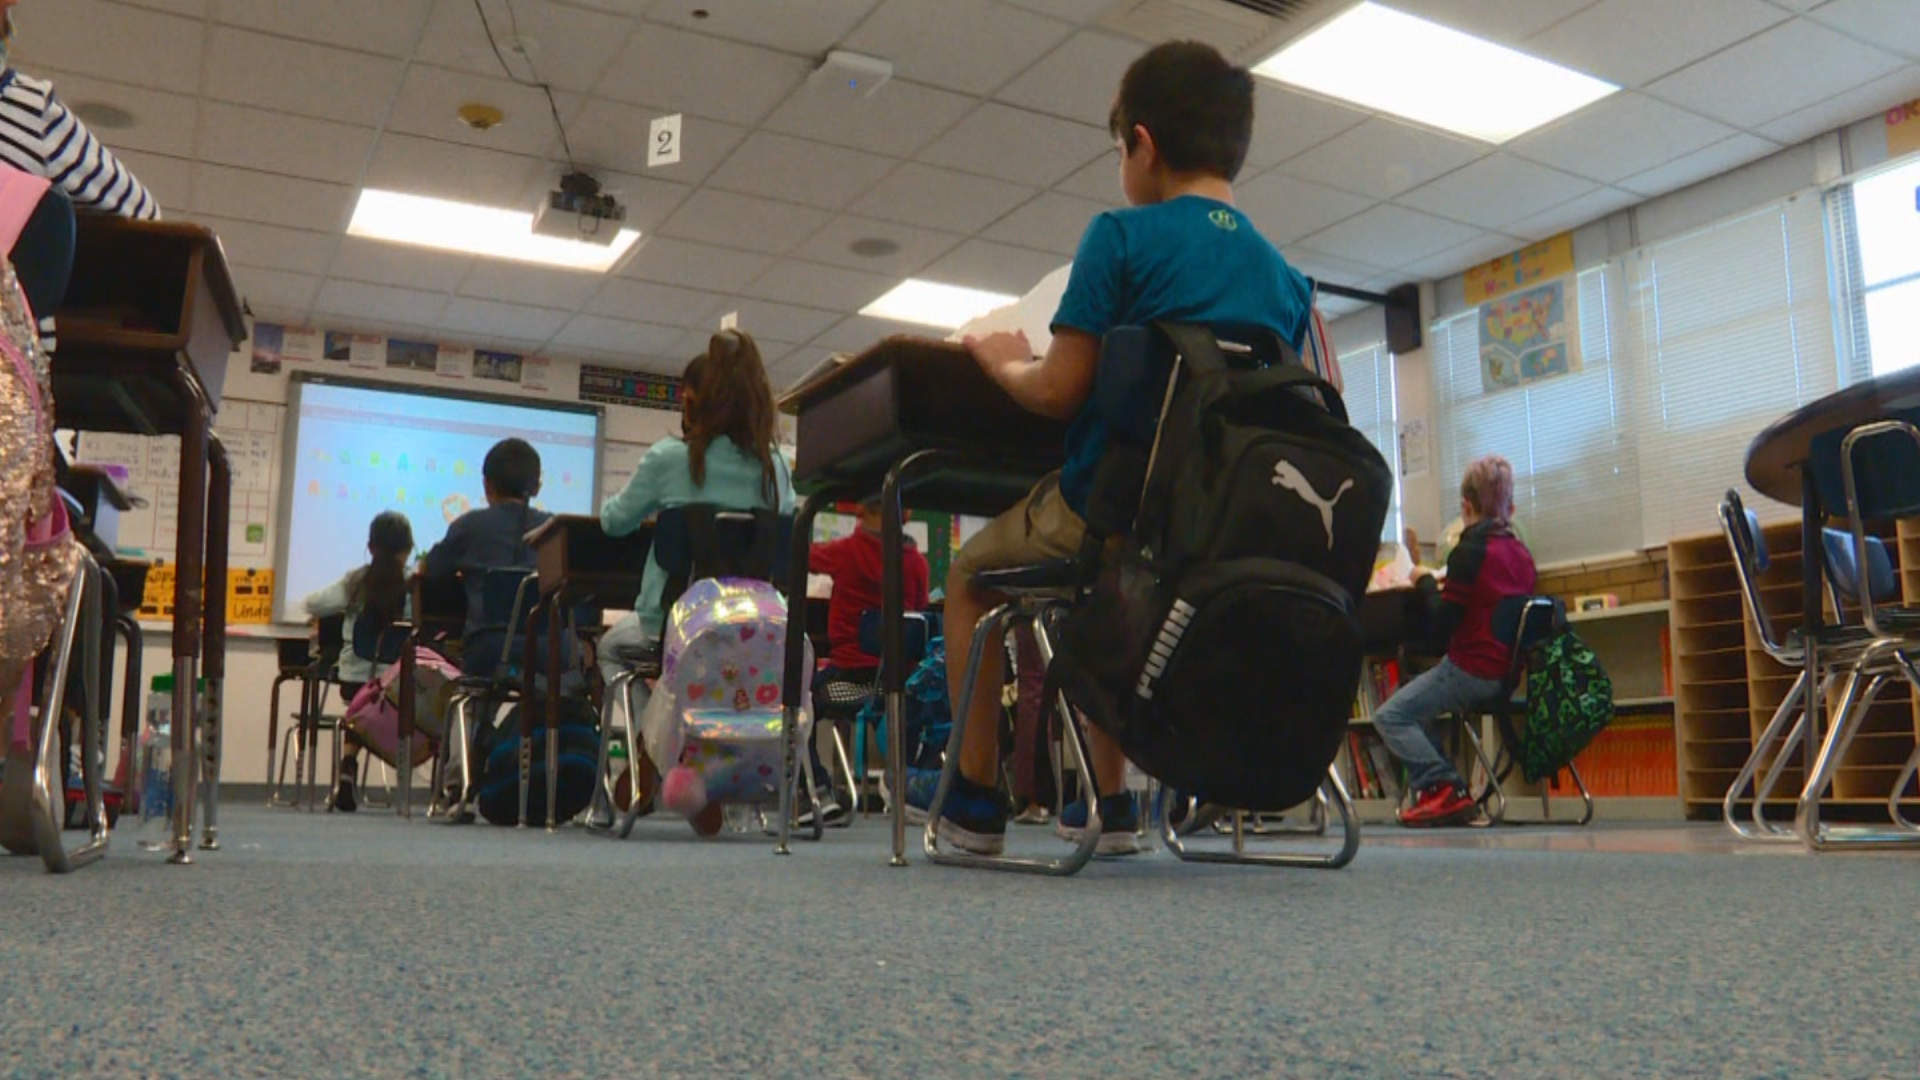 At Lincoln Elementary in South Salt Lake, 27 different languages are spoken in the halls. (KUTV)